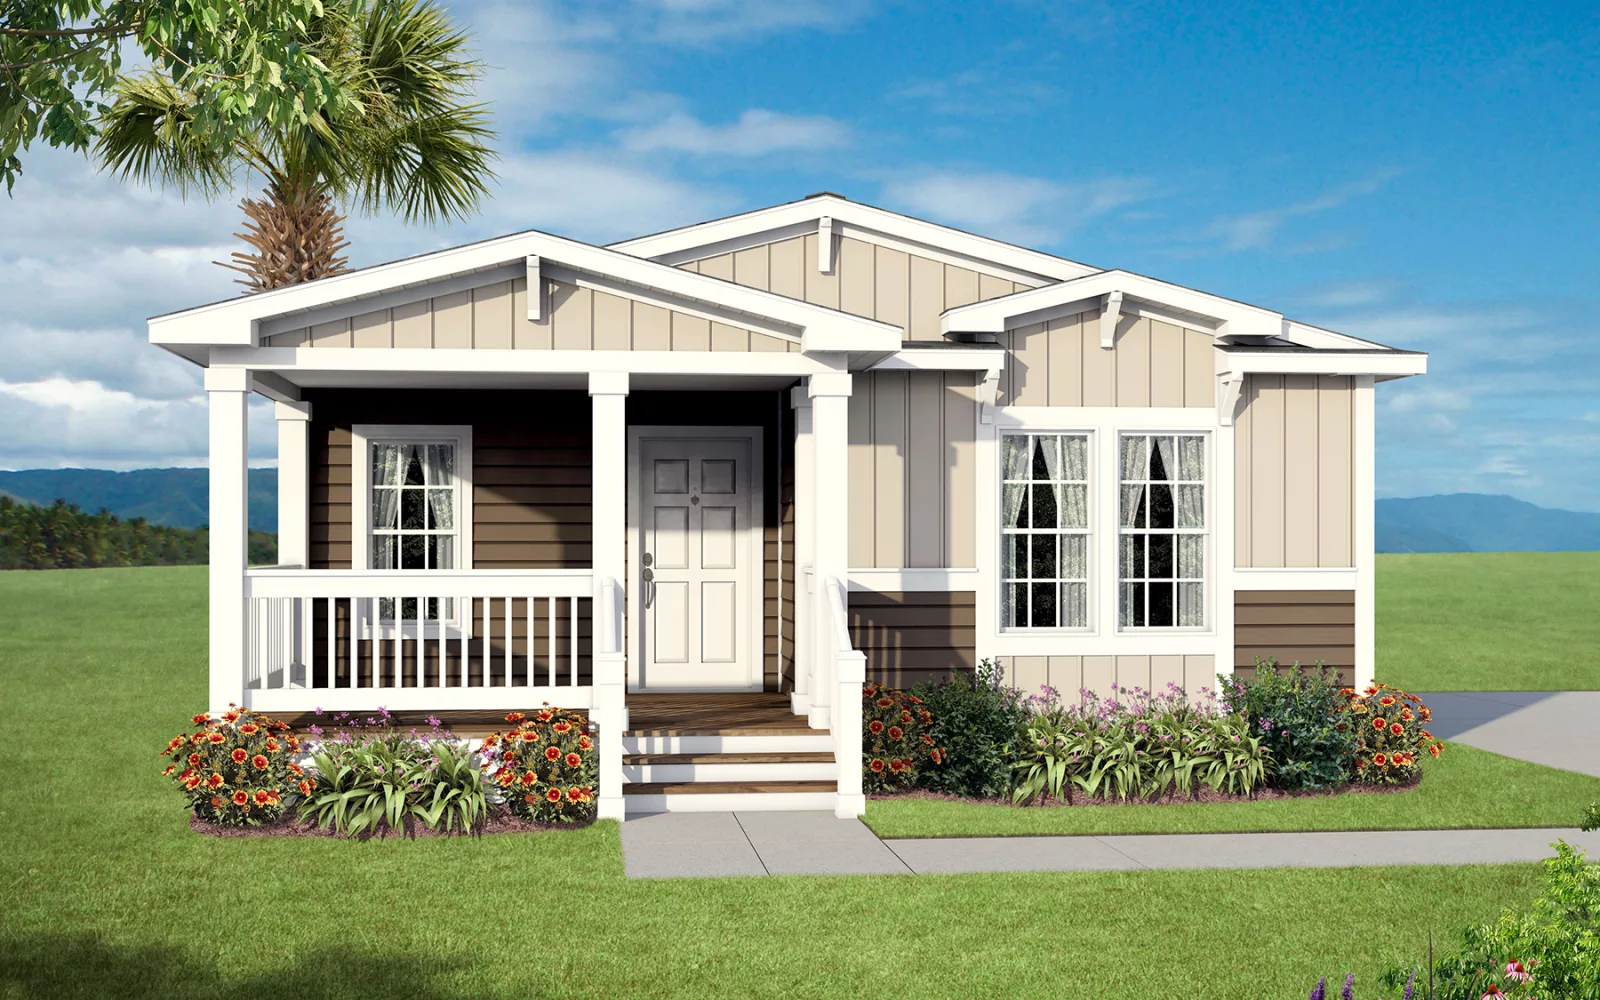 Image of the Champion Homes 4563B Manufactured Home in the Craftsman Series